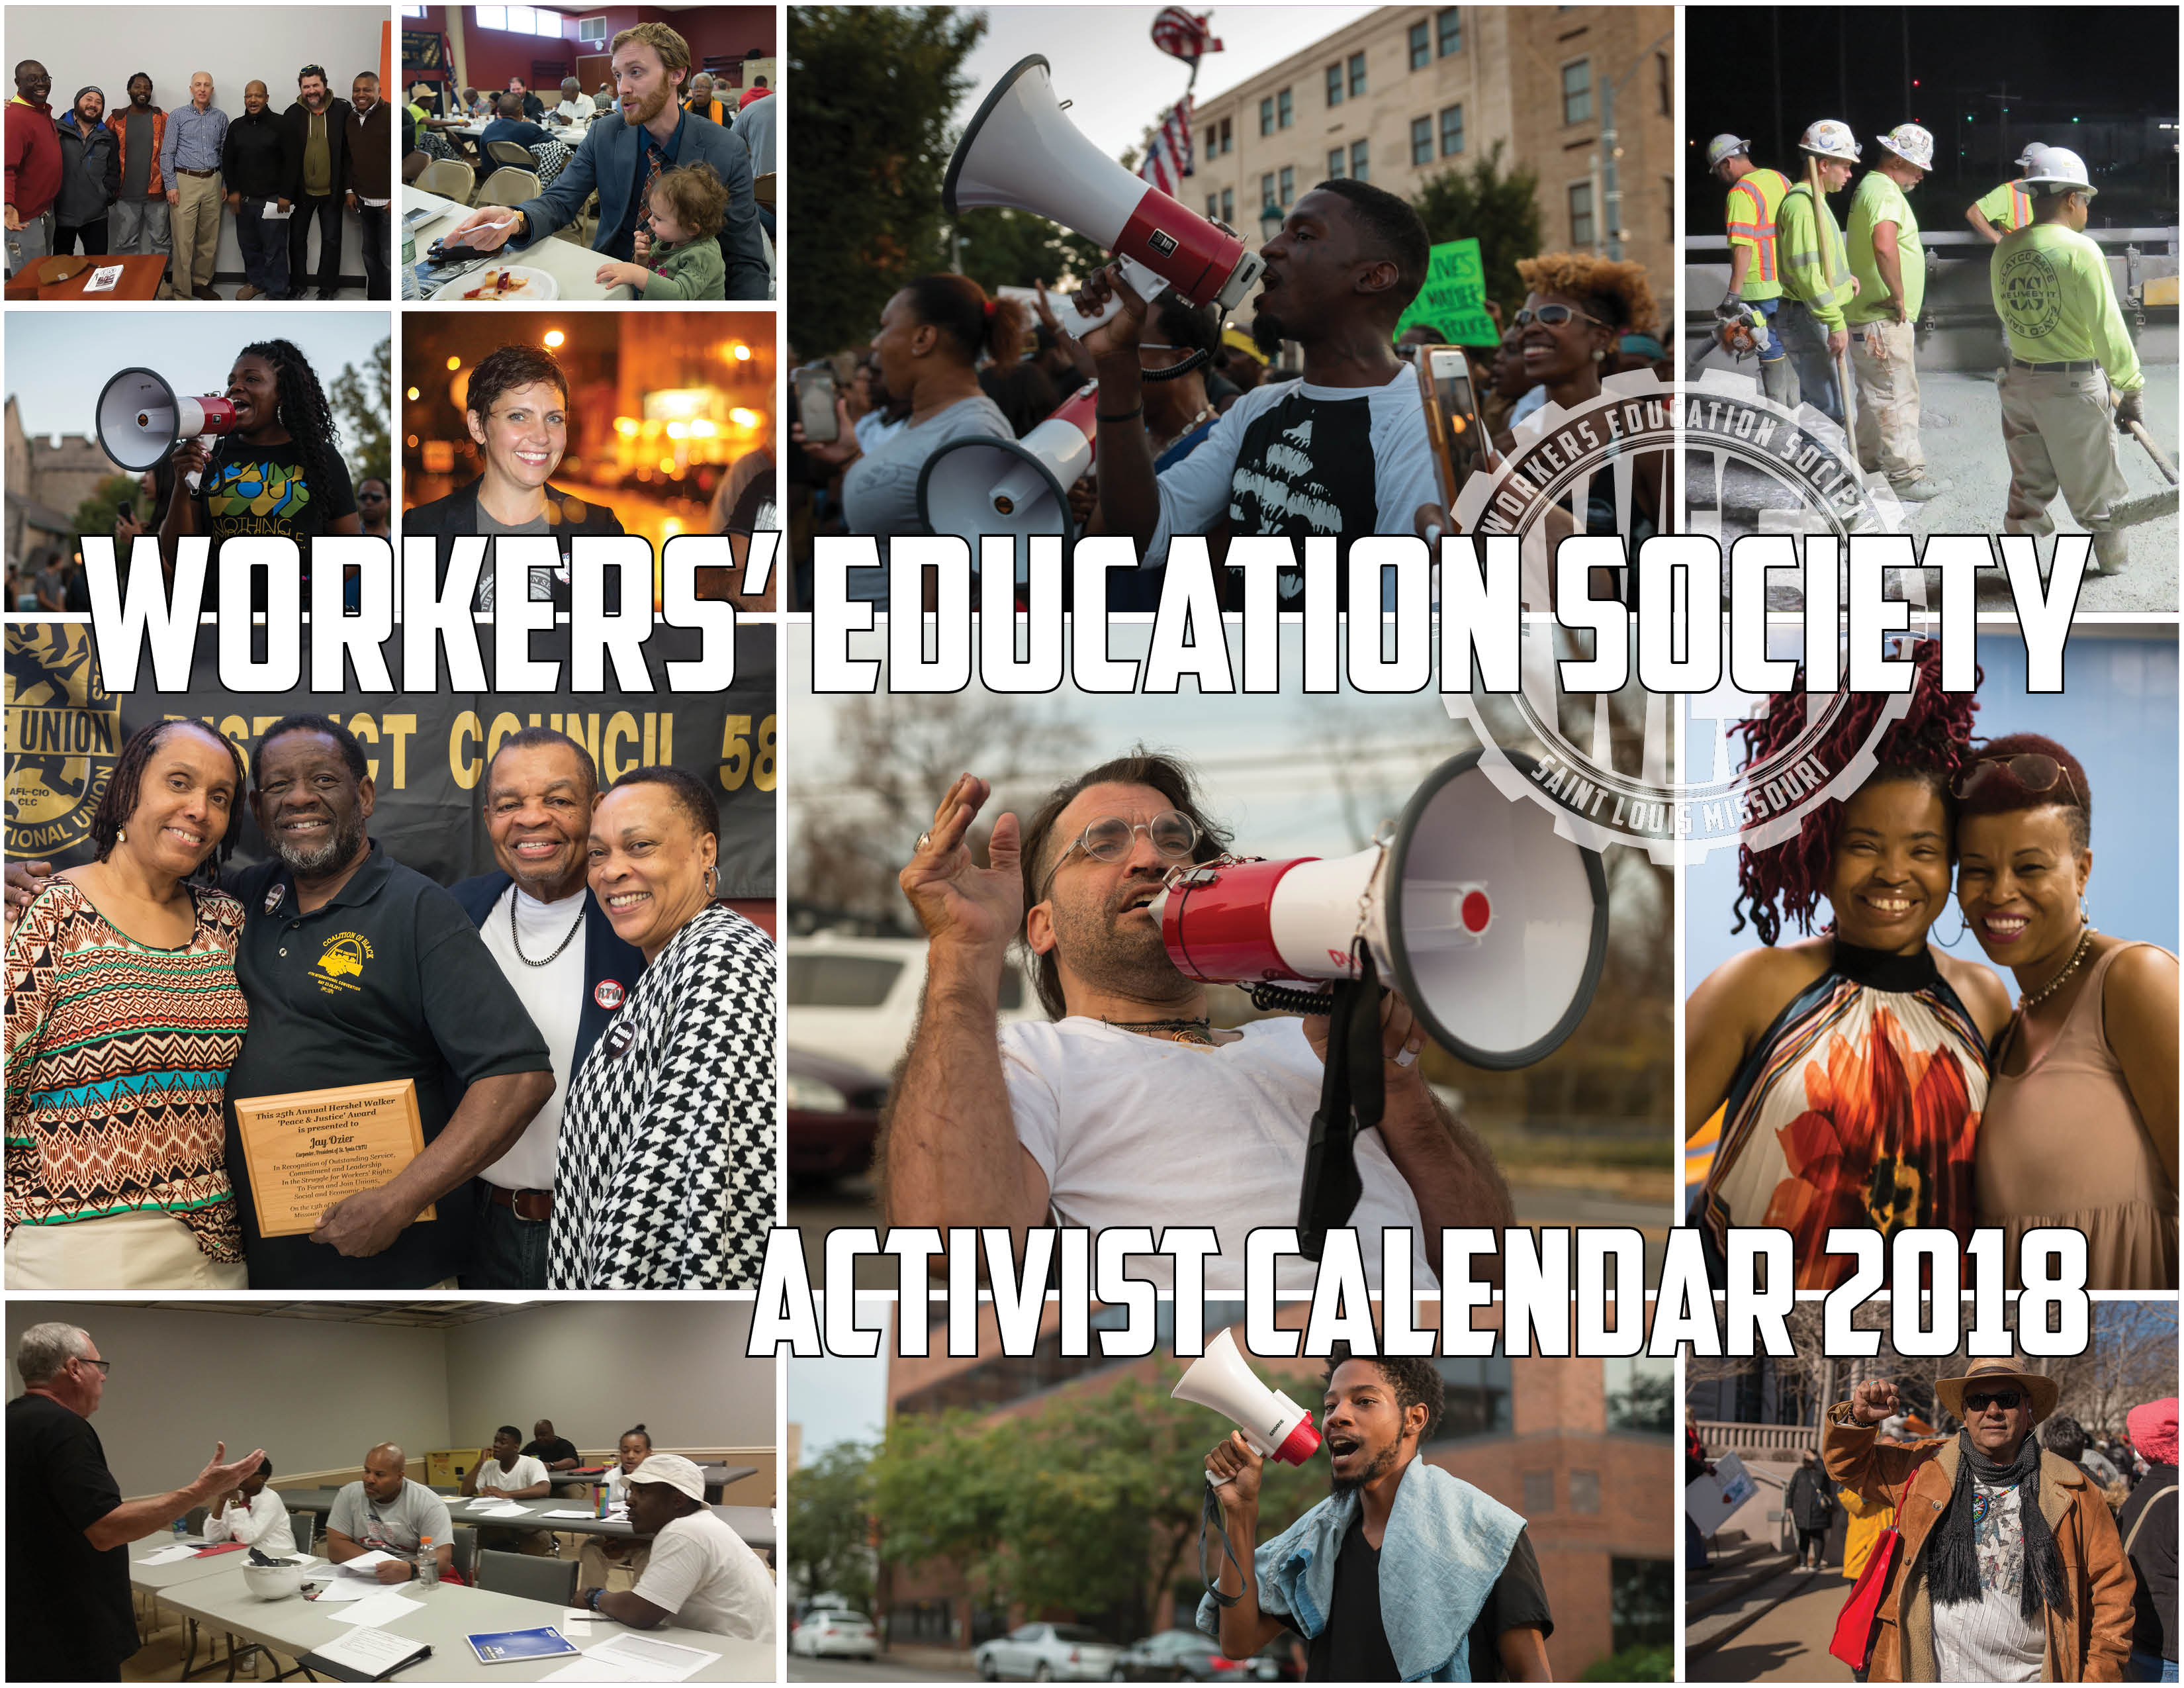 Get Your WES Activist Calendar 2018 Today!